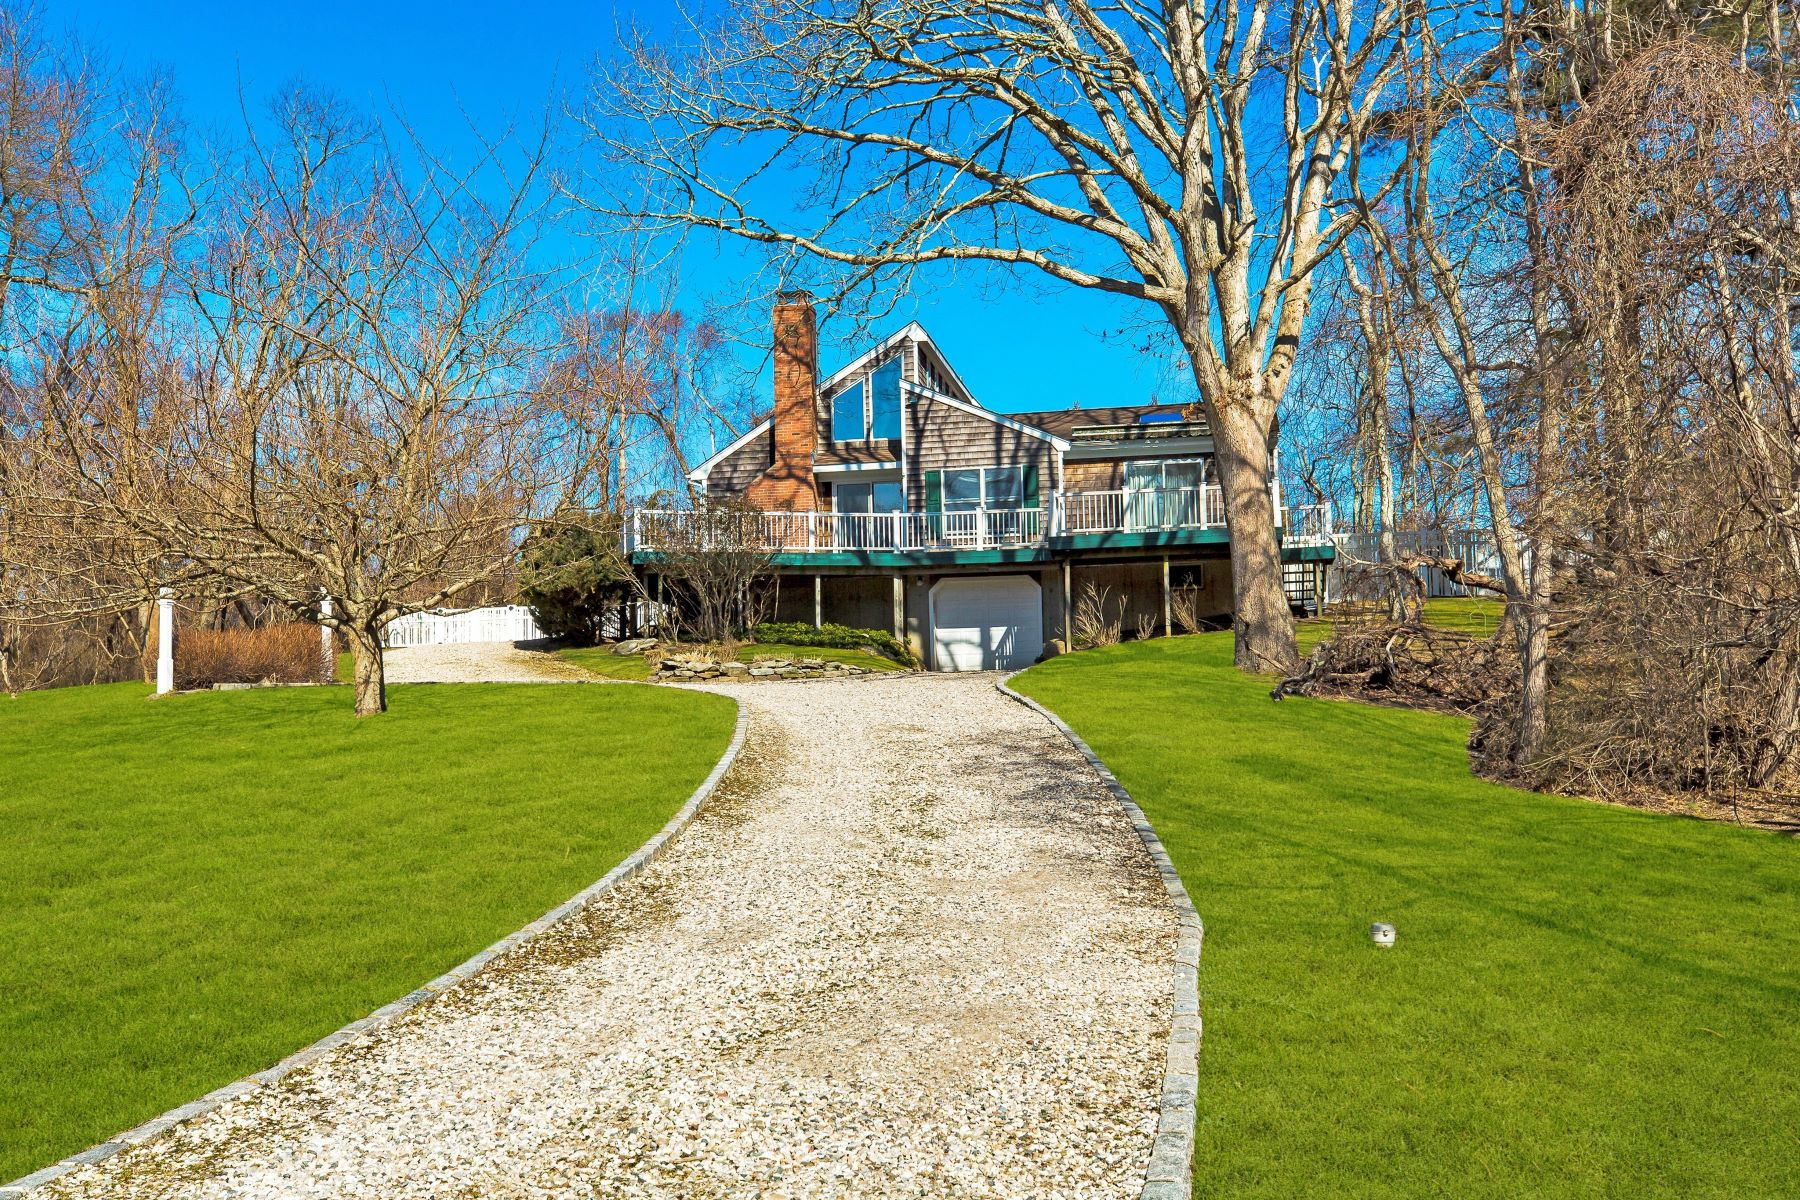 Single Family Homes for Sale at Shelter Island 1 Osprey Road Shelter Island, New York 11964 United States